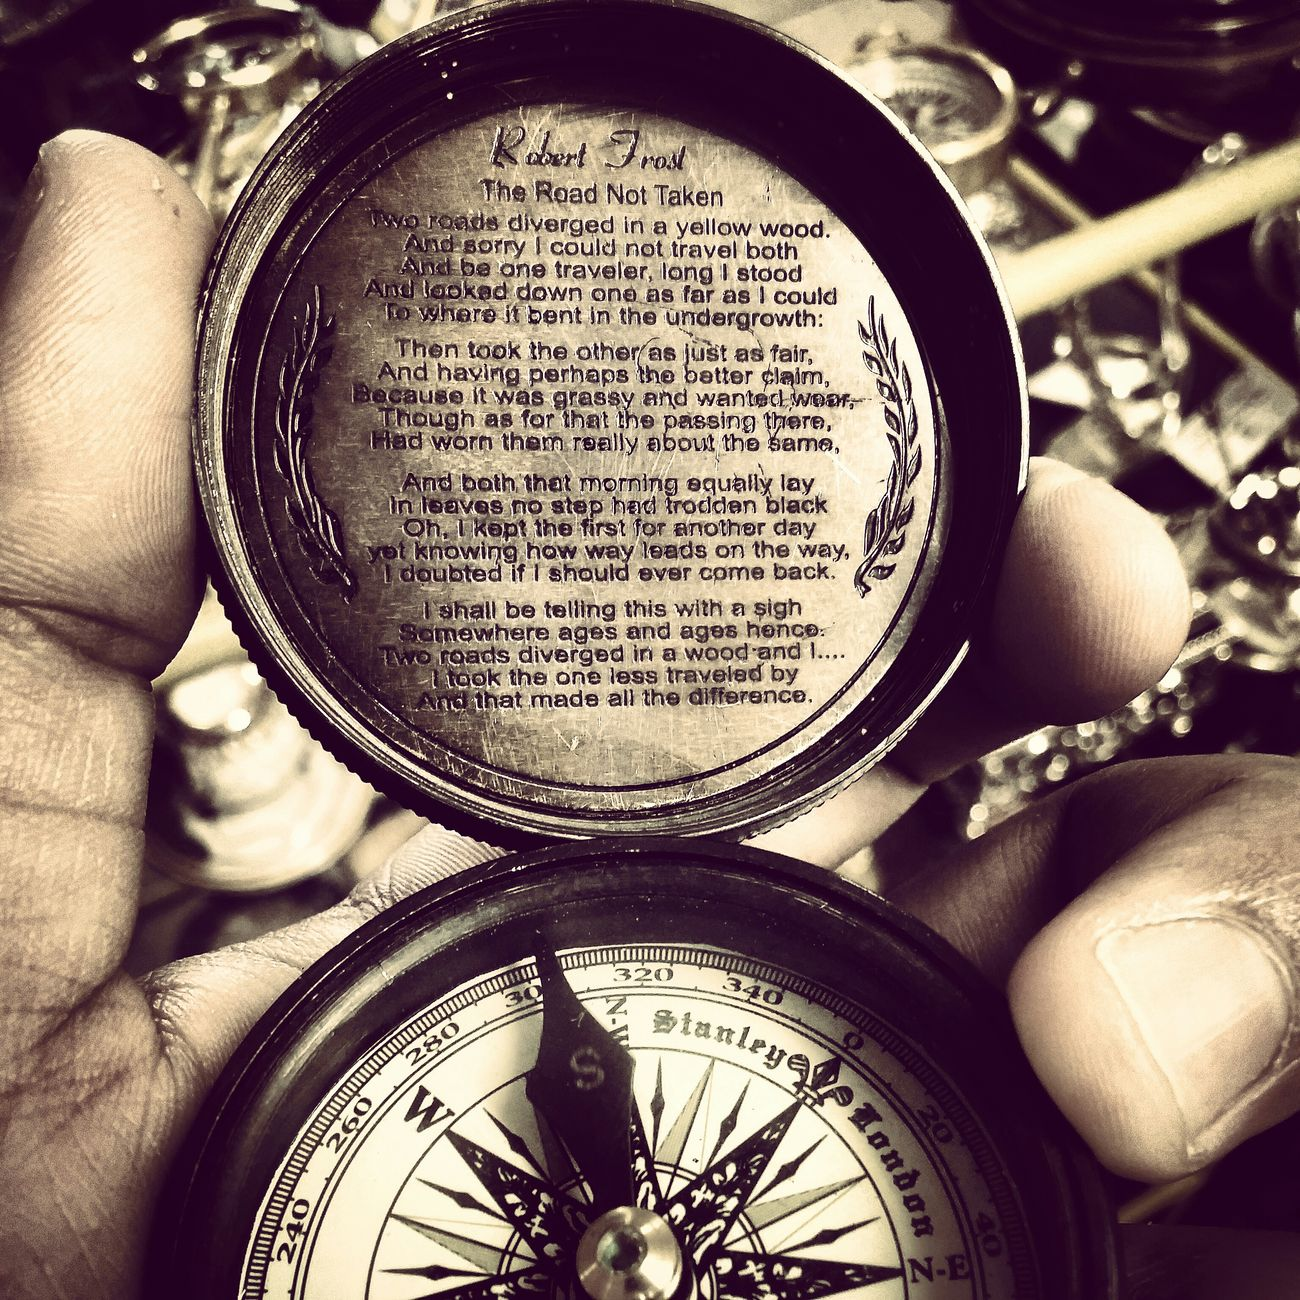 Compass Vintage Stanley Brass Oceanographic Oldschool Check This Out PhonePhotography LG G3 The Road Not Taken By Robert Frost